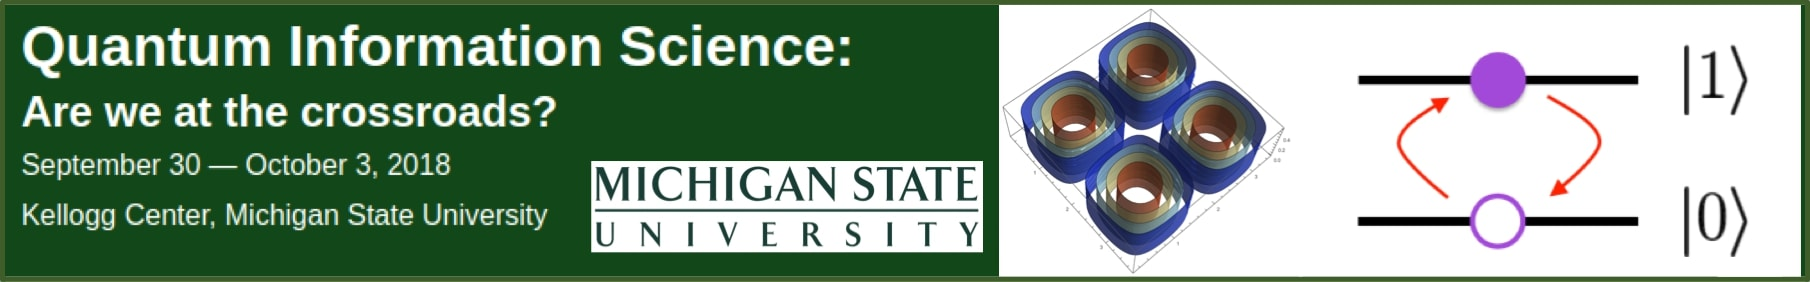 MSU QIS workshop logo v2.jpg